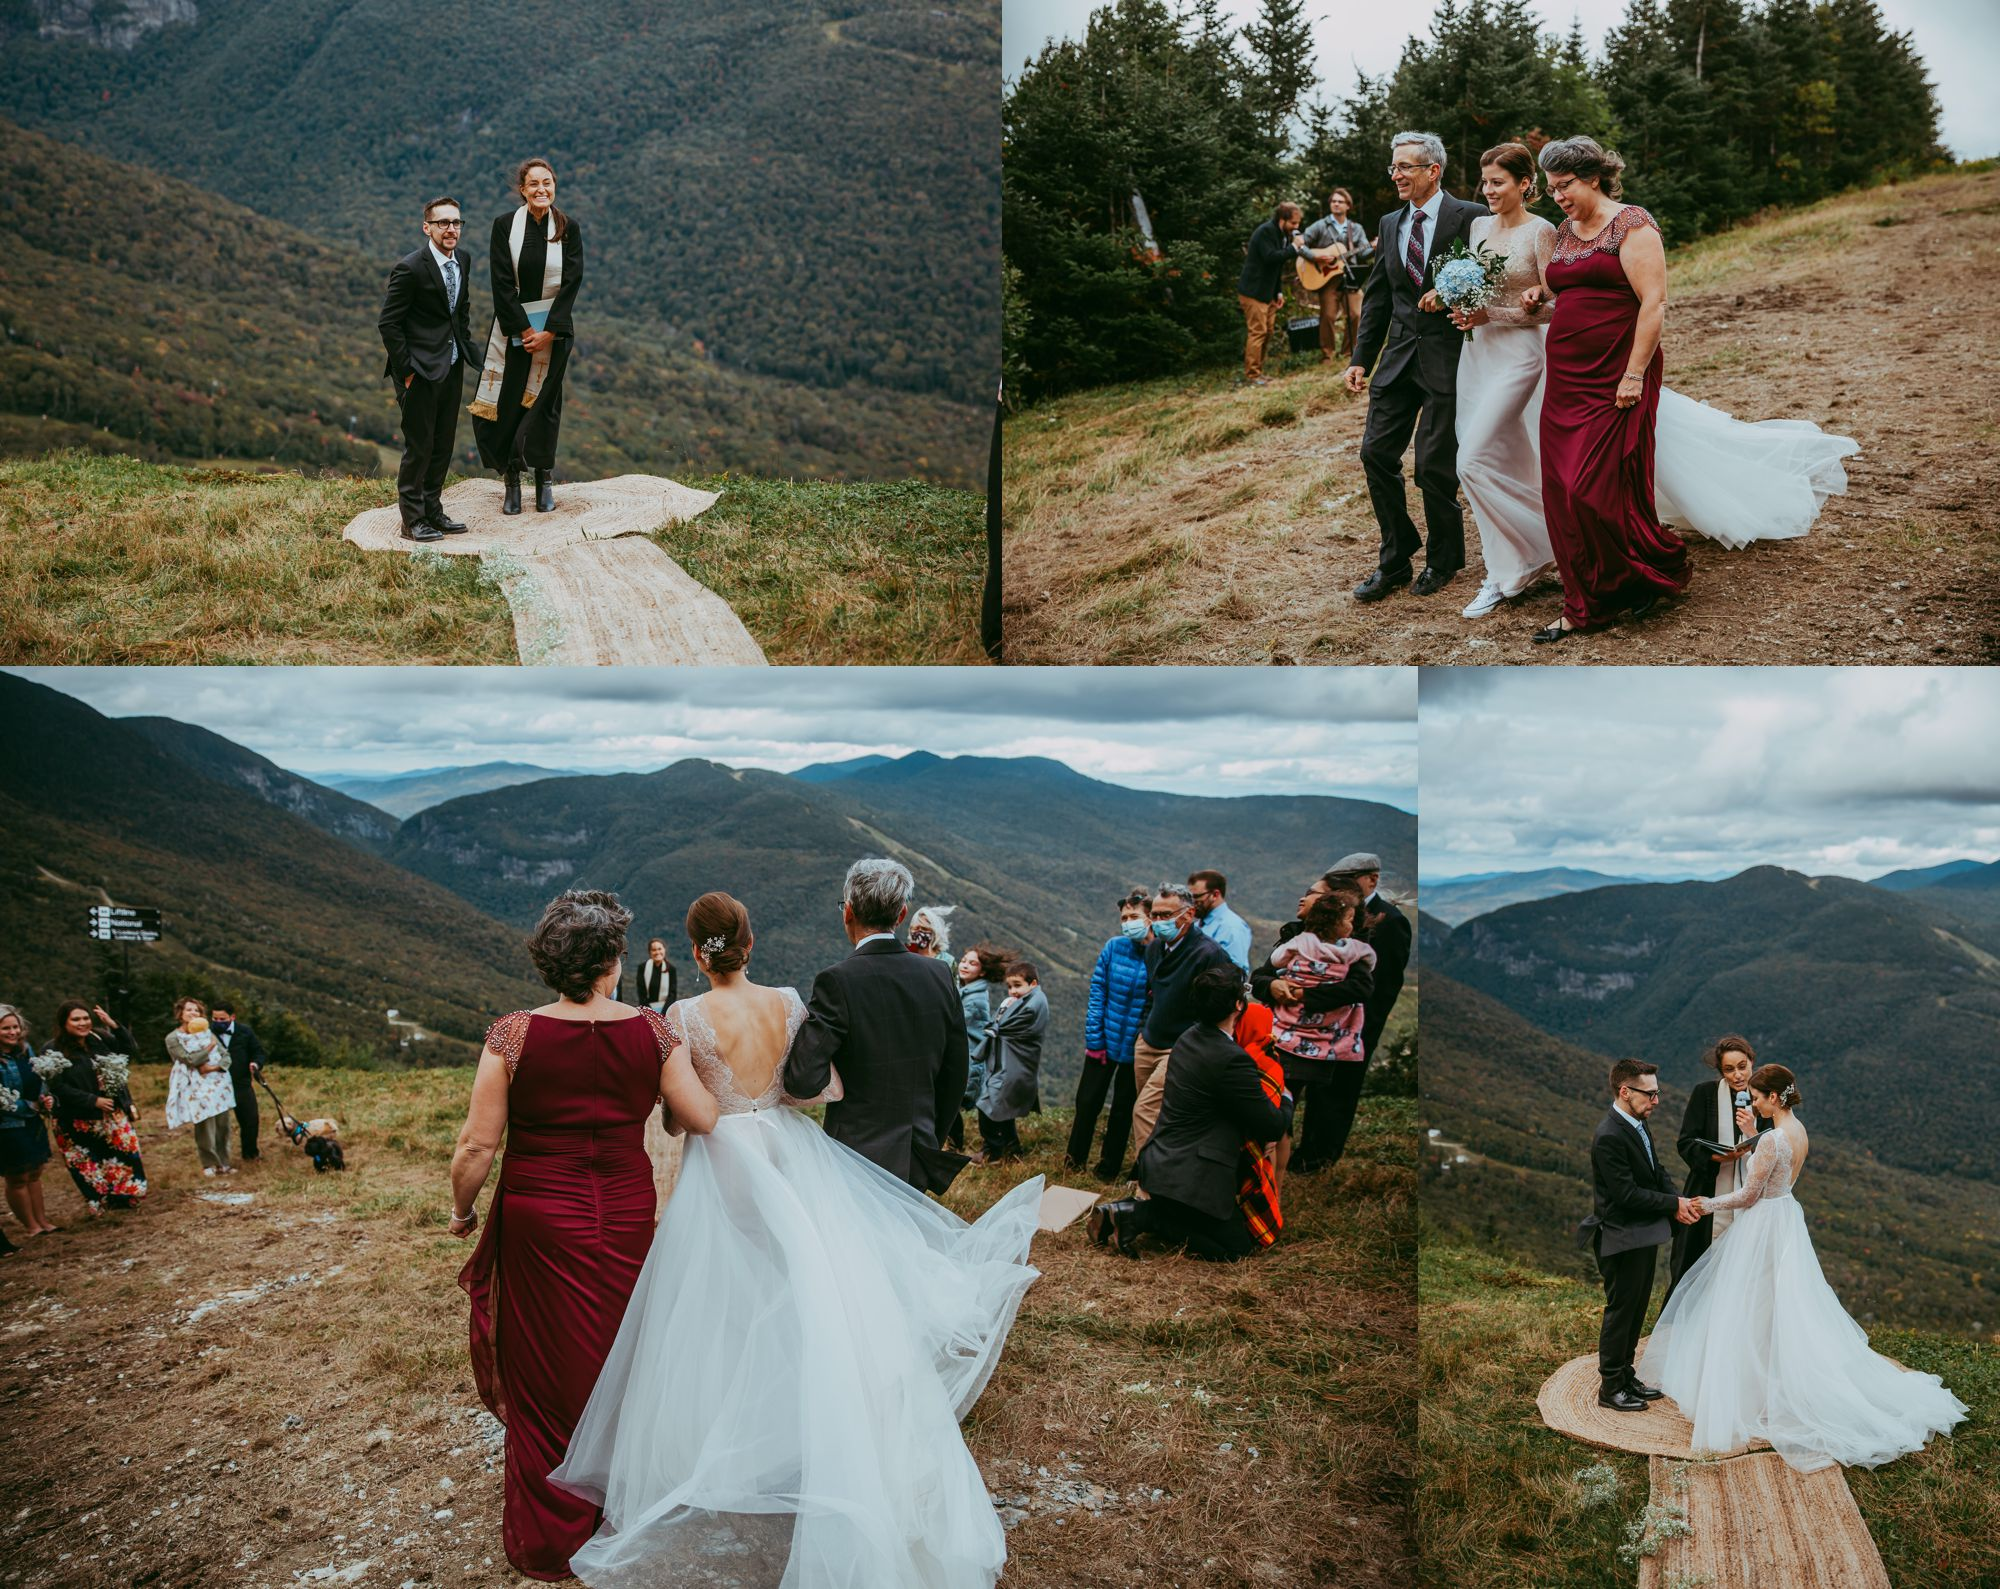 Mt Mansfield Ceremony Outdoors